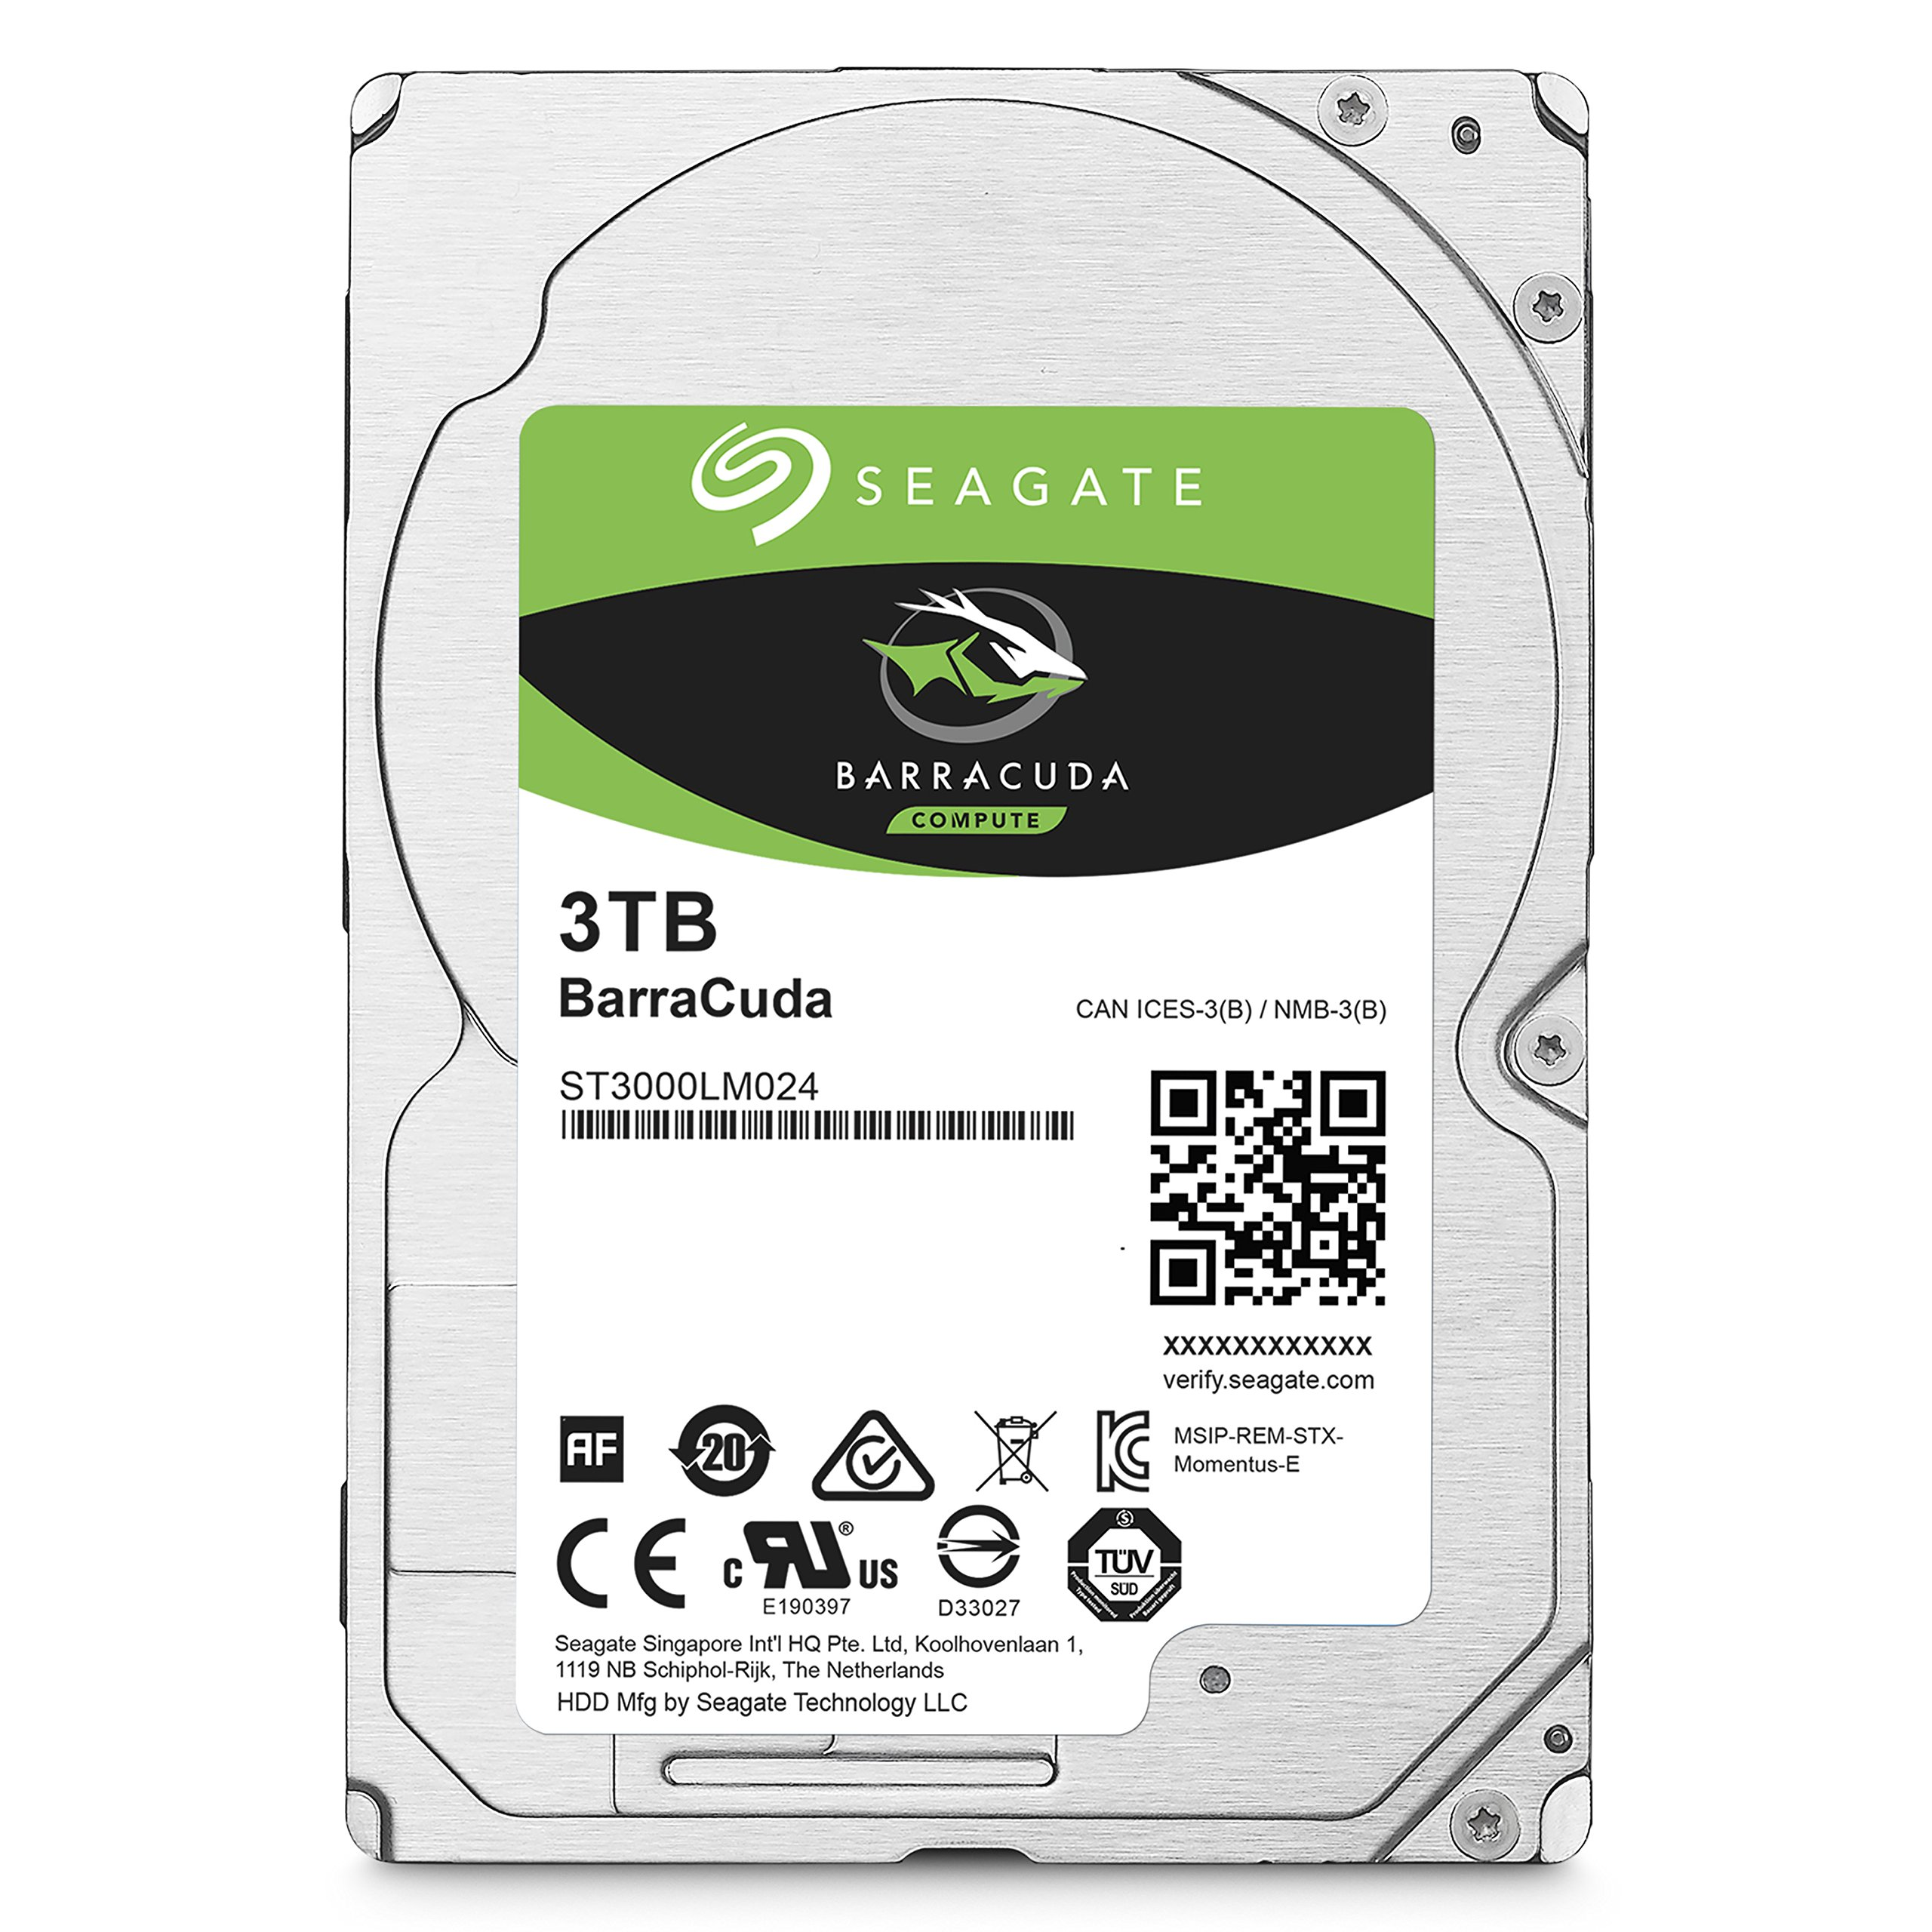 Seagate BarraCuda Mobile Hard Drive 3TB SATA 6Gb/s 128MB Cache 2.5-Inch 7mm (ST3000LM024)